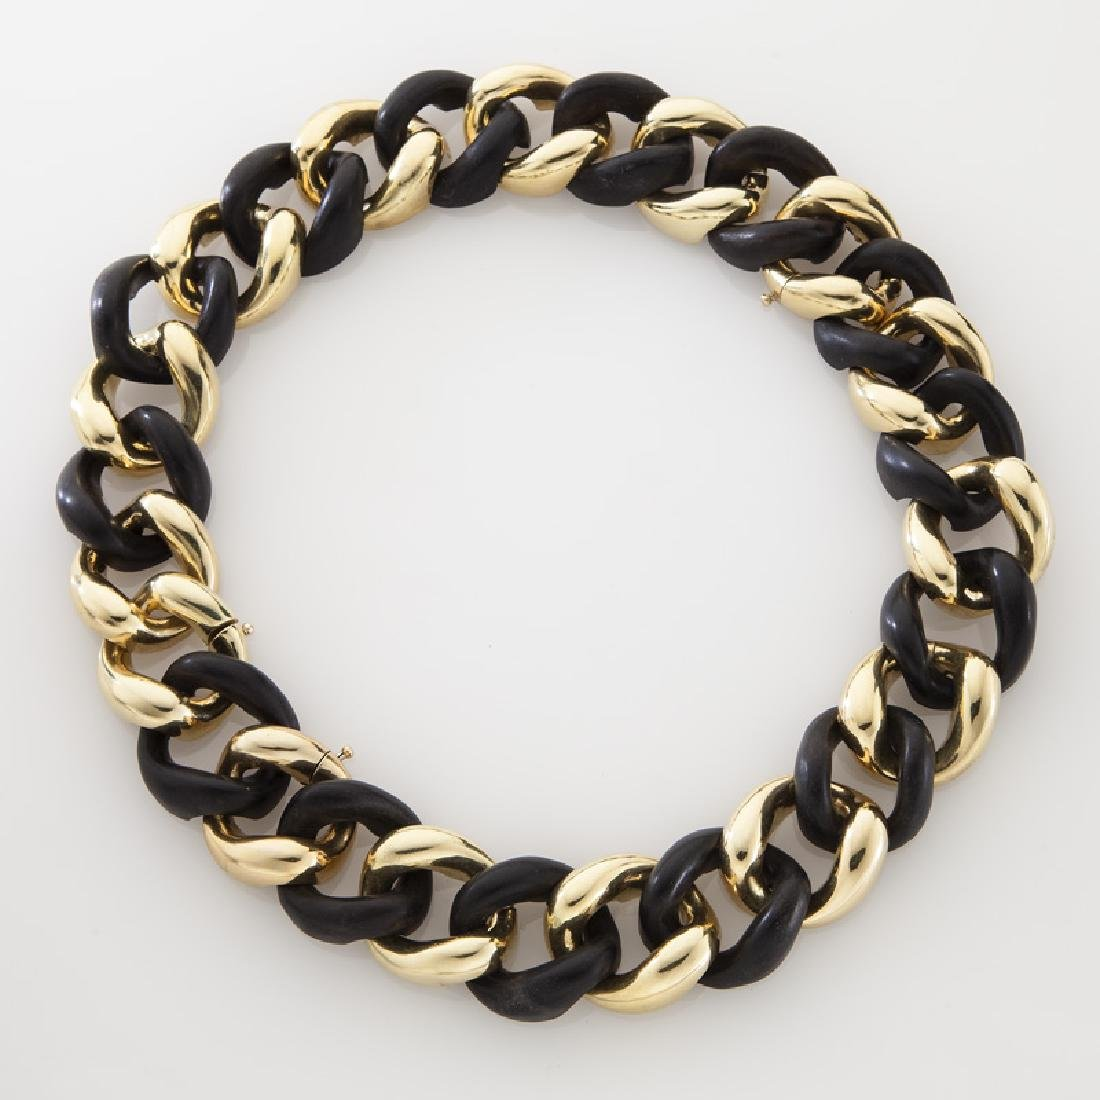 18K gold and ebony necklace/bracelet conversion